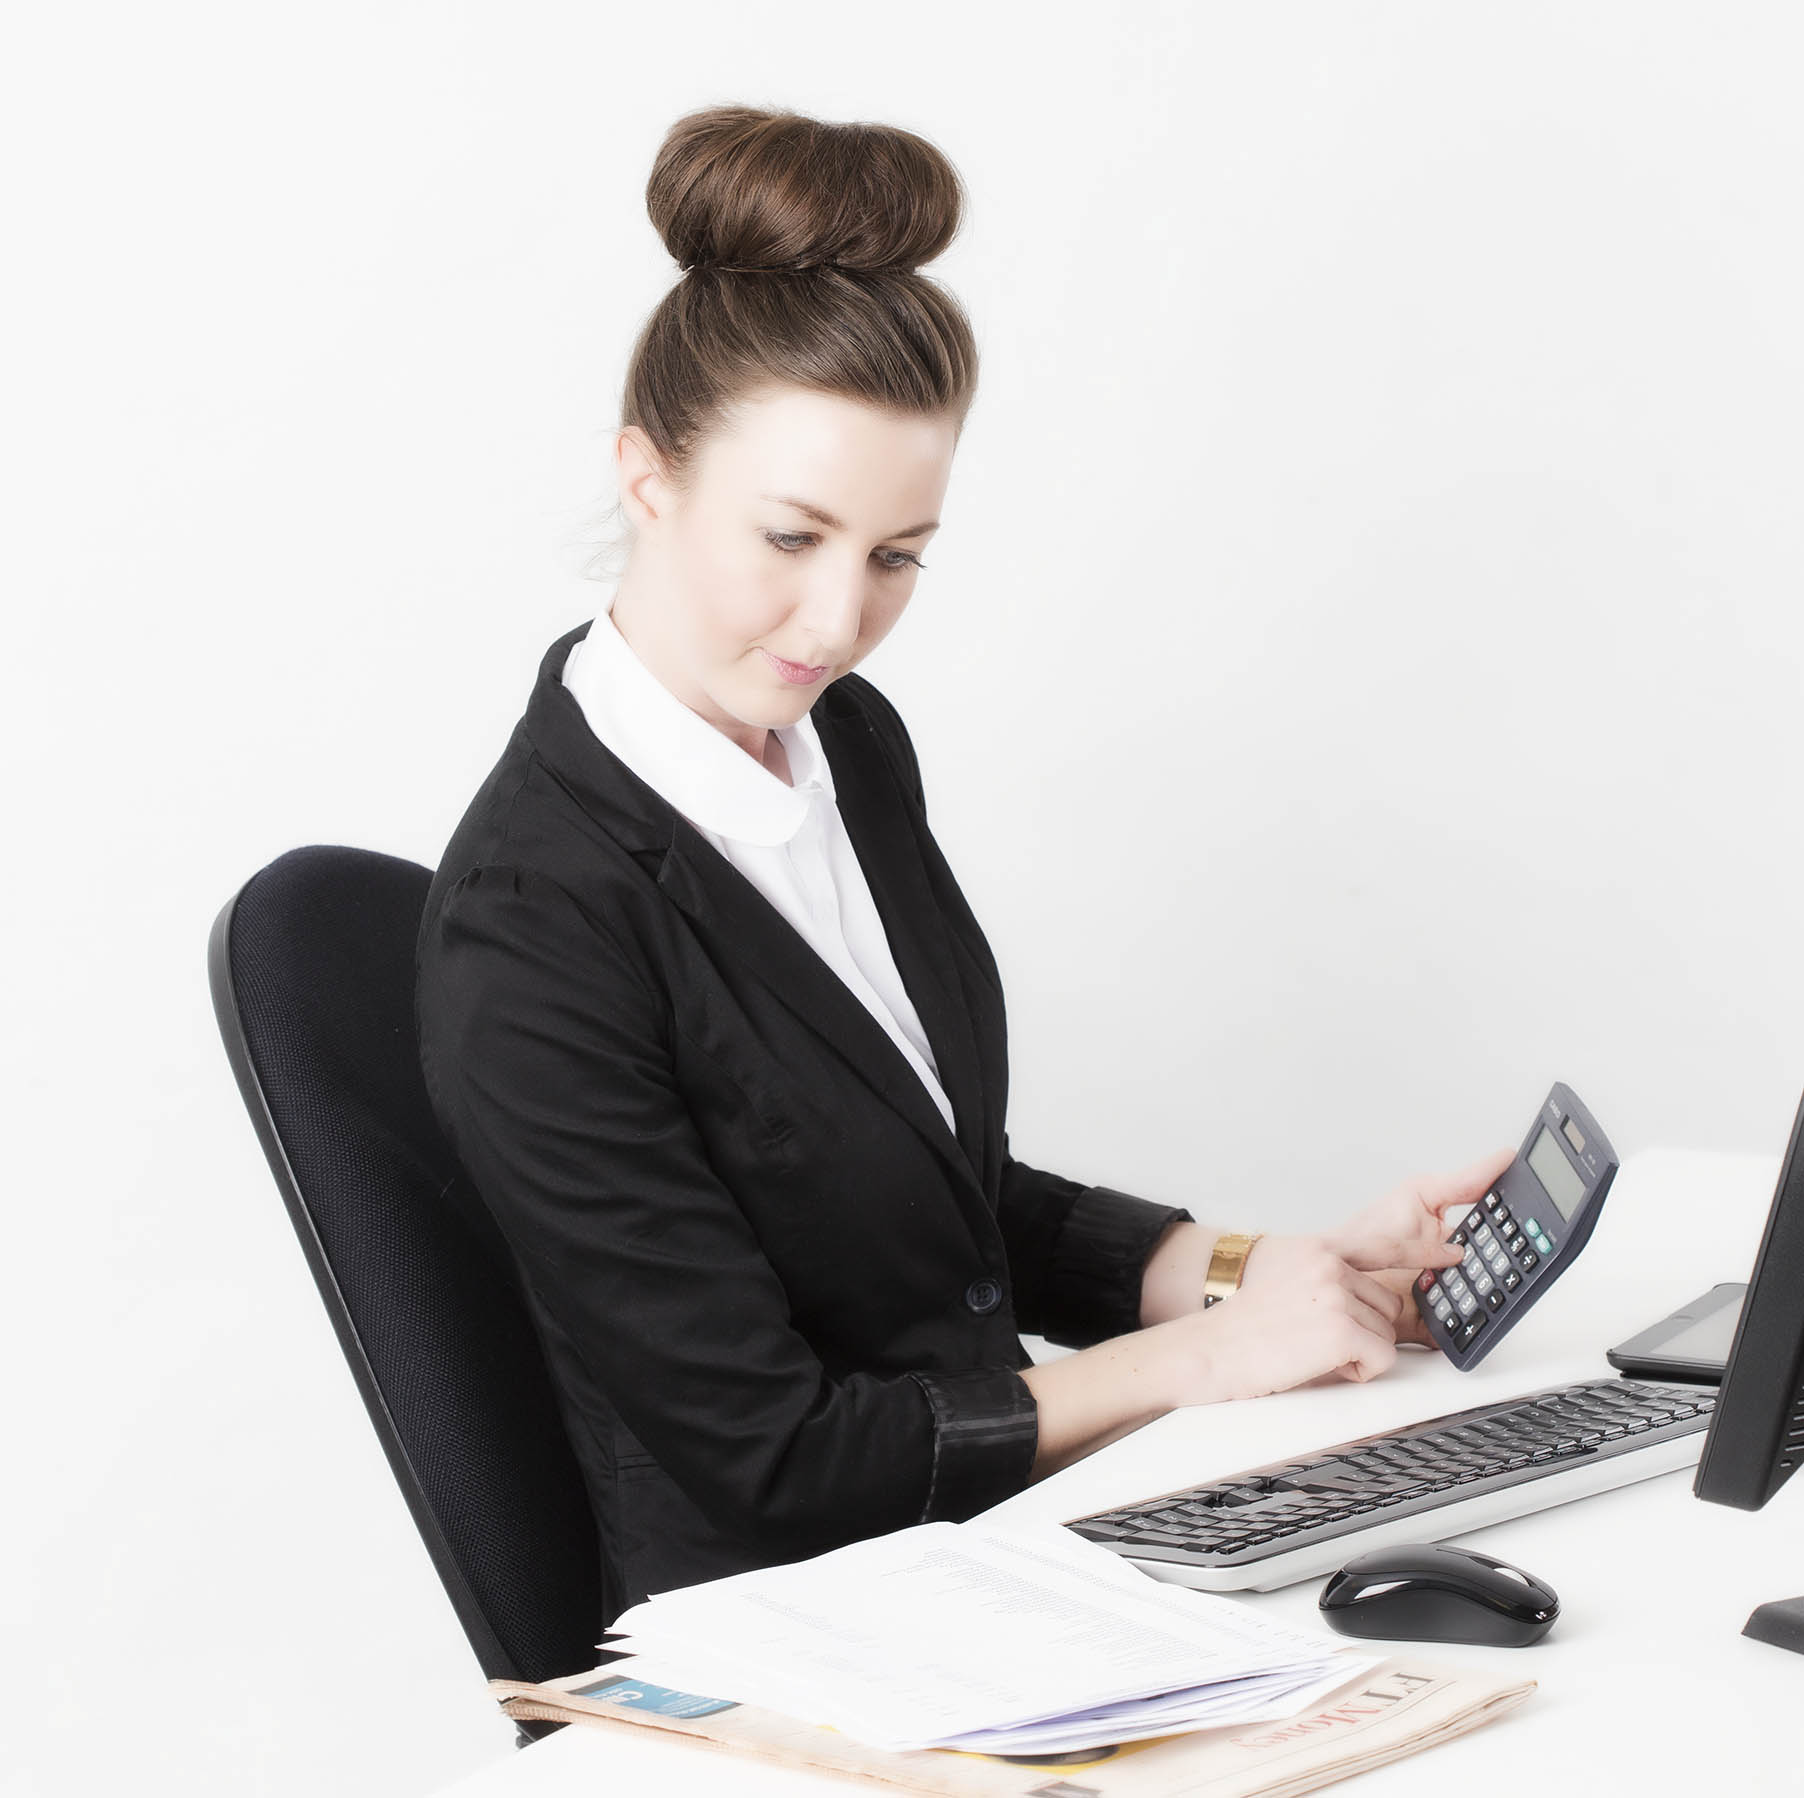 Accounted For providing a complete Accountancy service